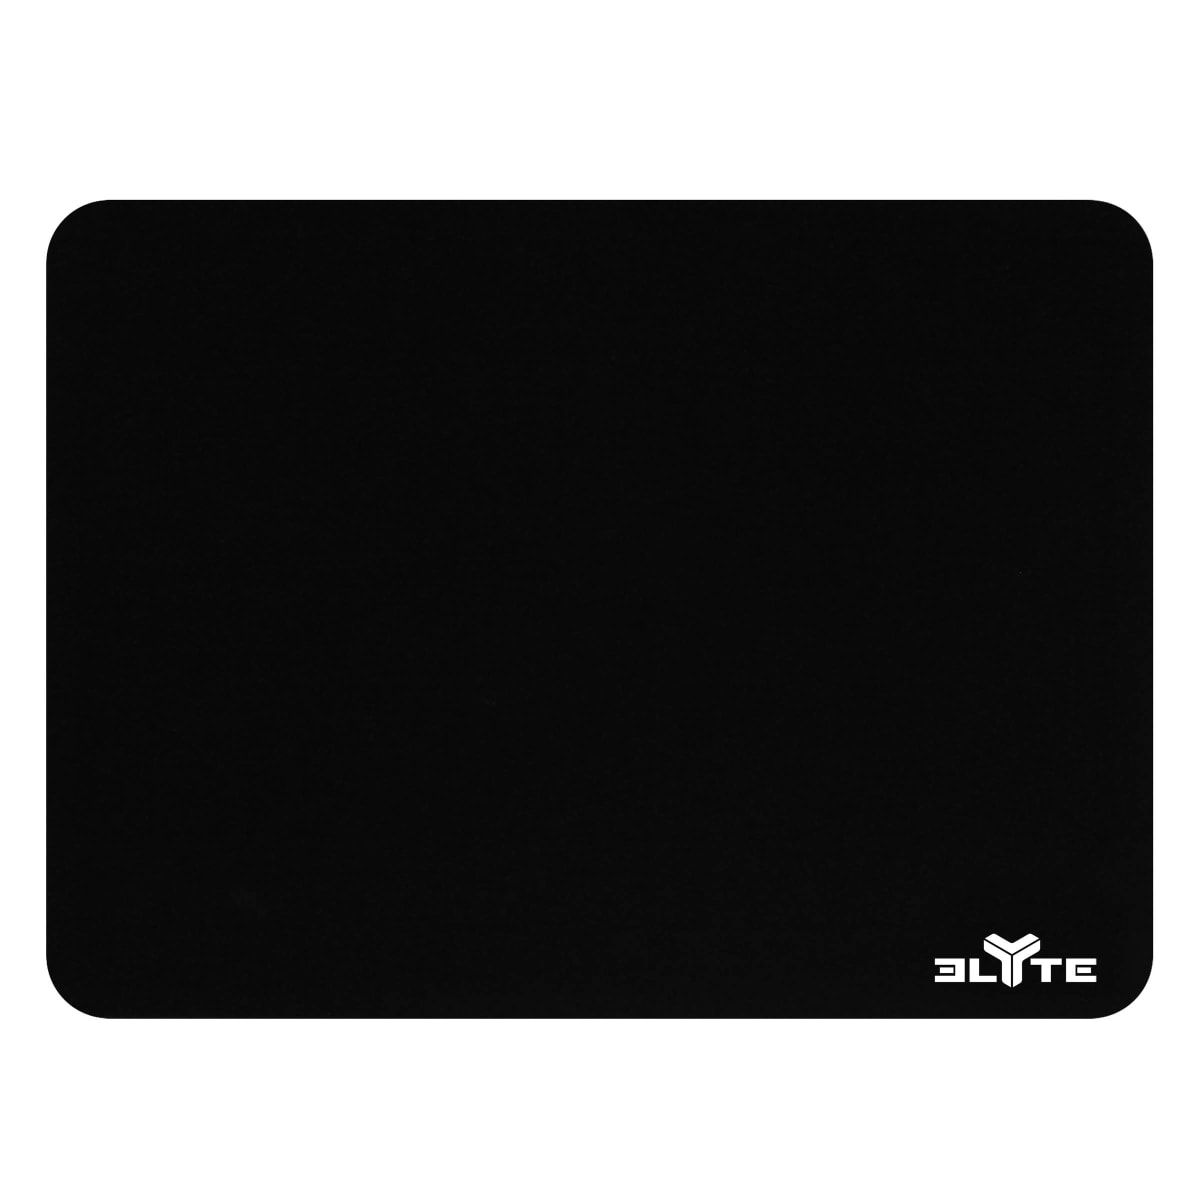 PY-100 gaming mouse pad